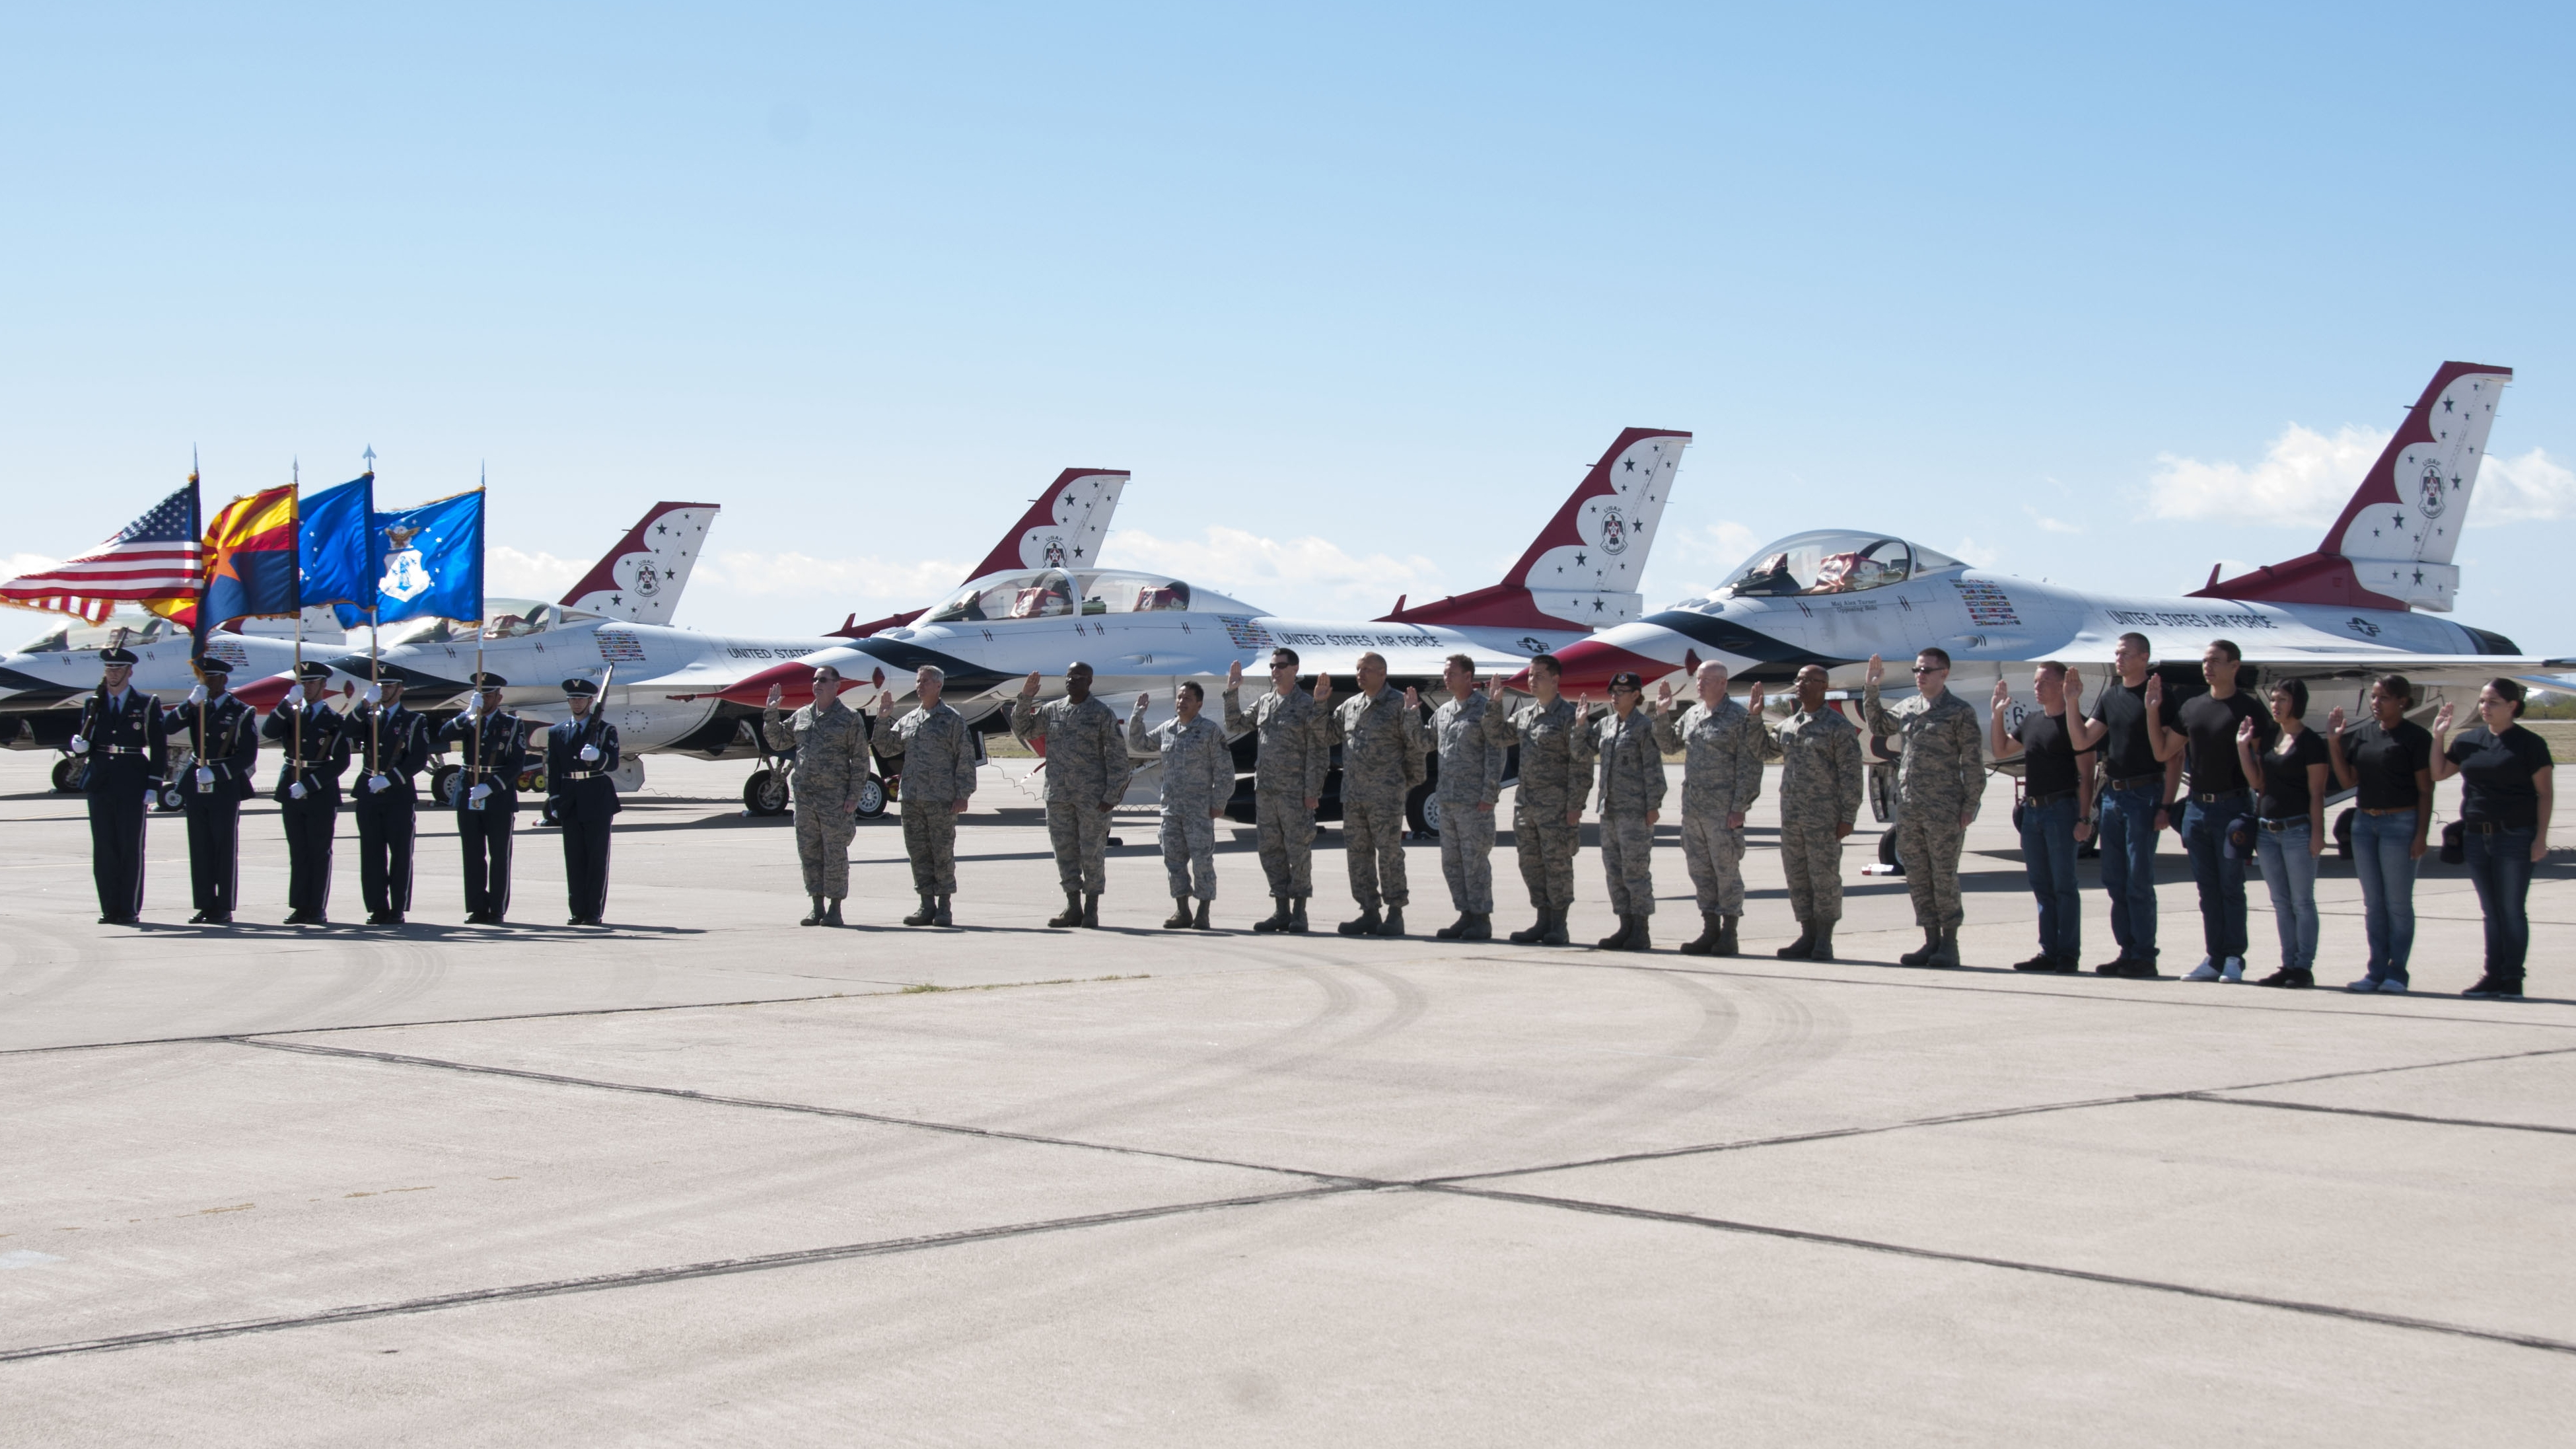 Airmen stand in front of Air Force plnes as they swear the oath of enlistment